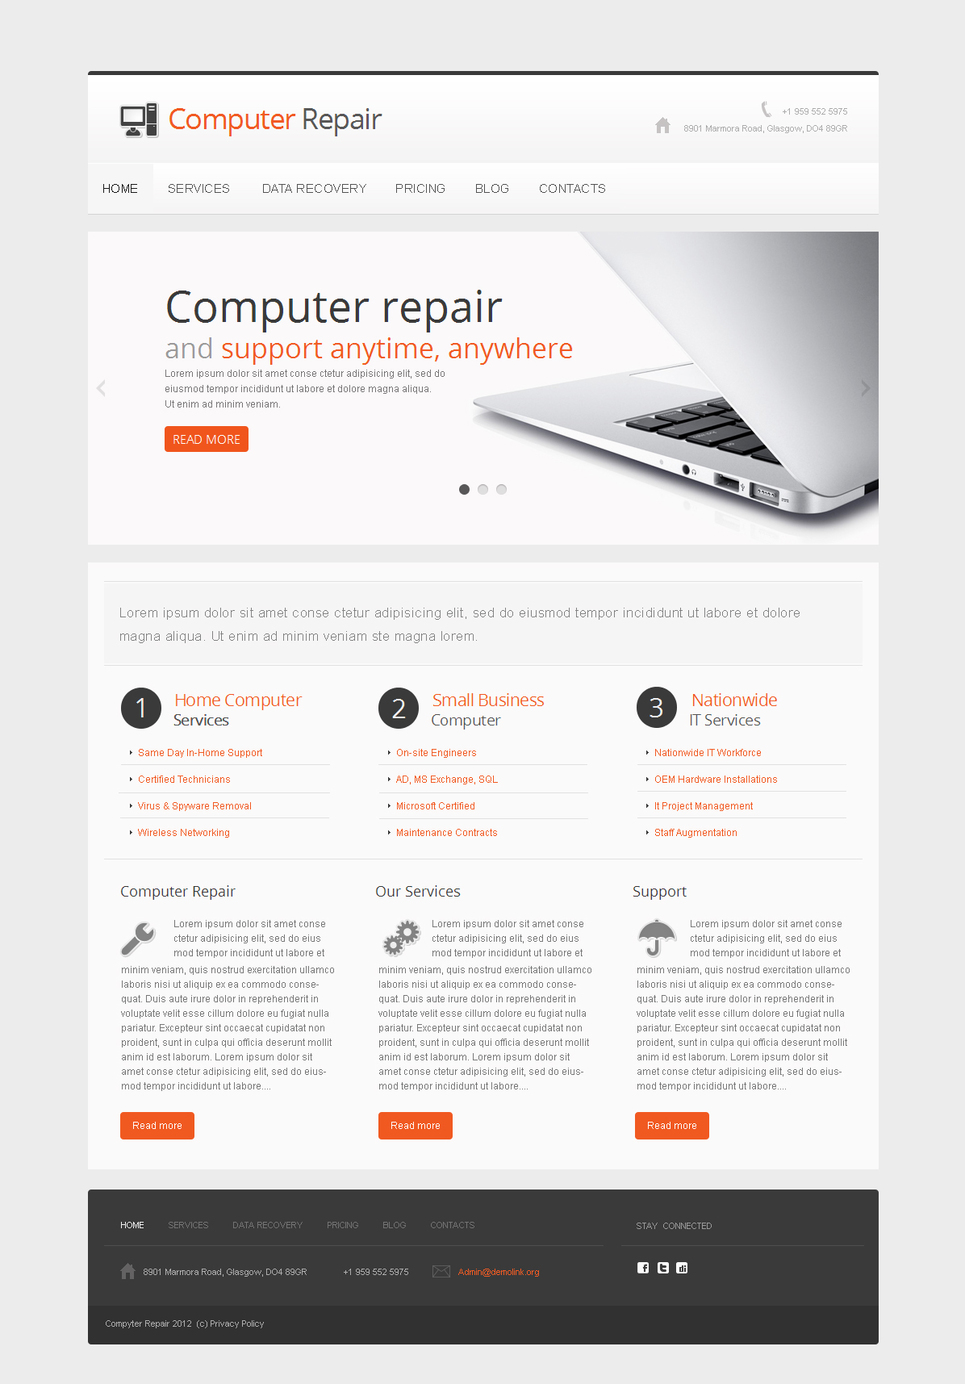 Computer Repair Website Template Made in White Tones - image